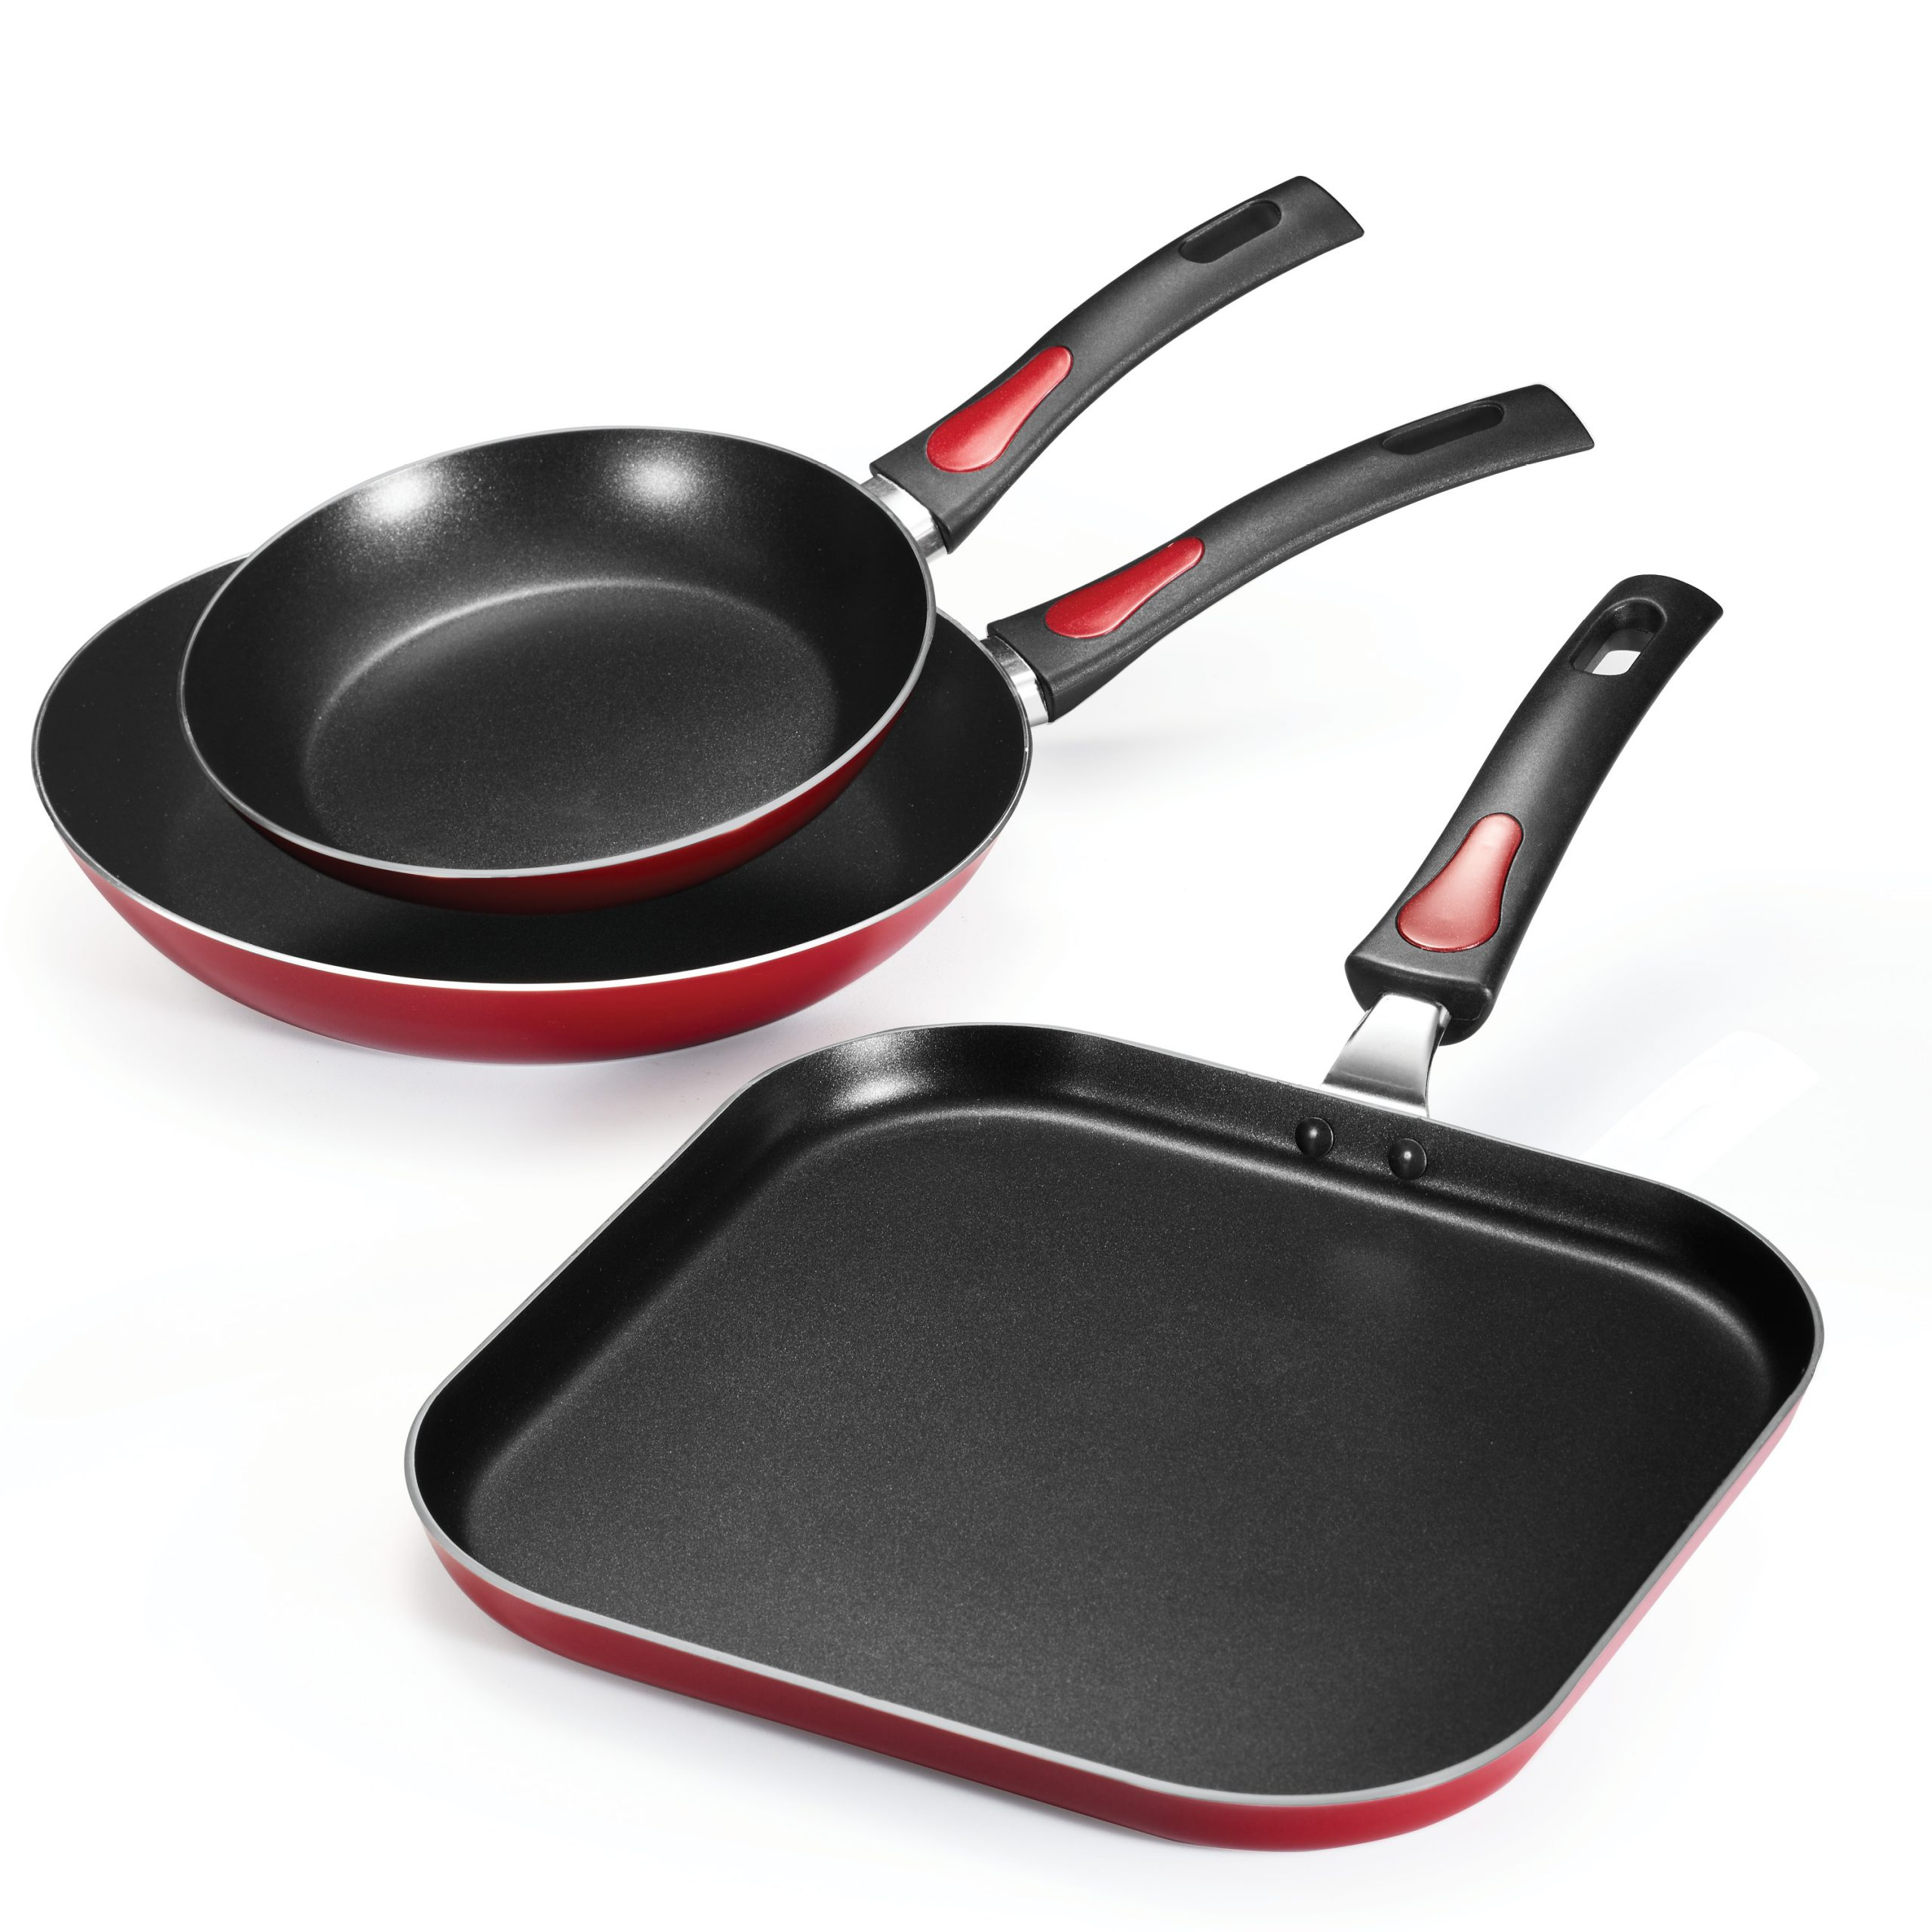 Tramontina Everyday Non-Stick Red Fry Pan & Griddle Set Only $17.94 (Reg $19.94) + Free Store Pickup at Walmart.com!